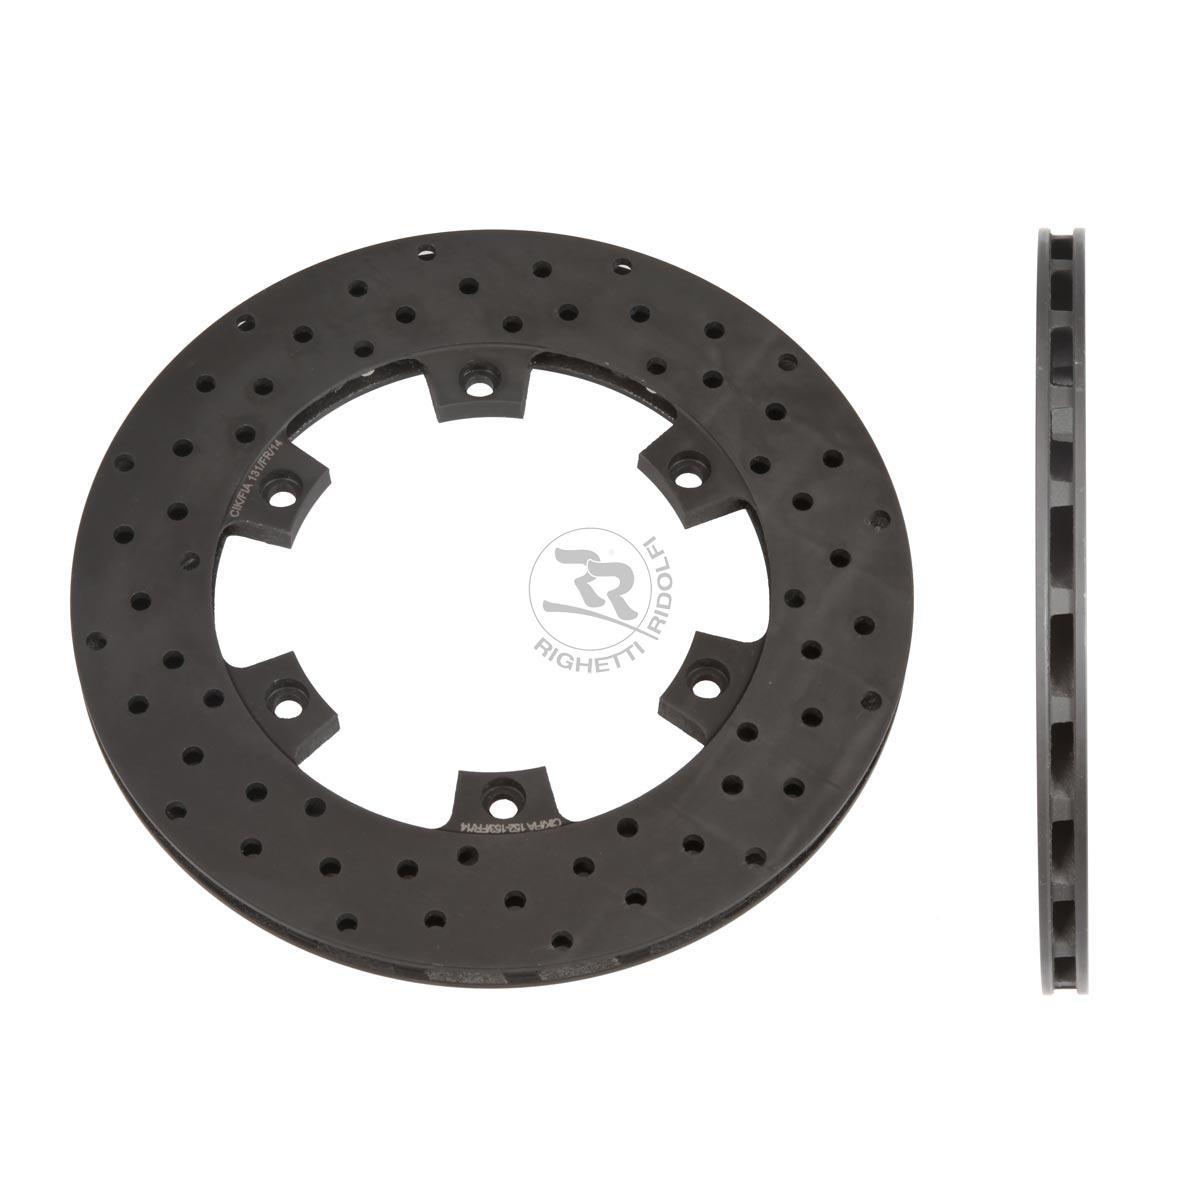 REAR SELF-VENTILATED BRAKE DISK 200mm,HOLE